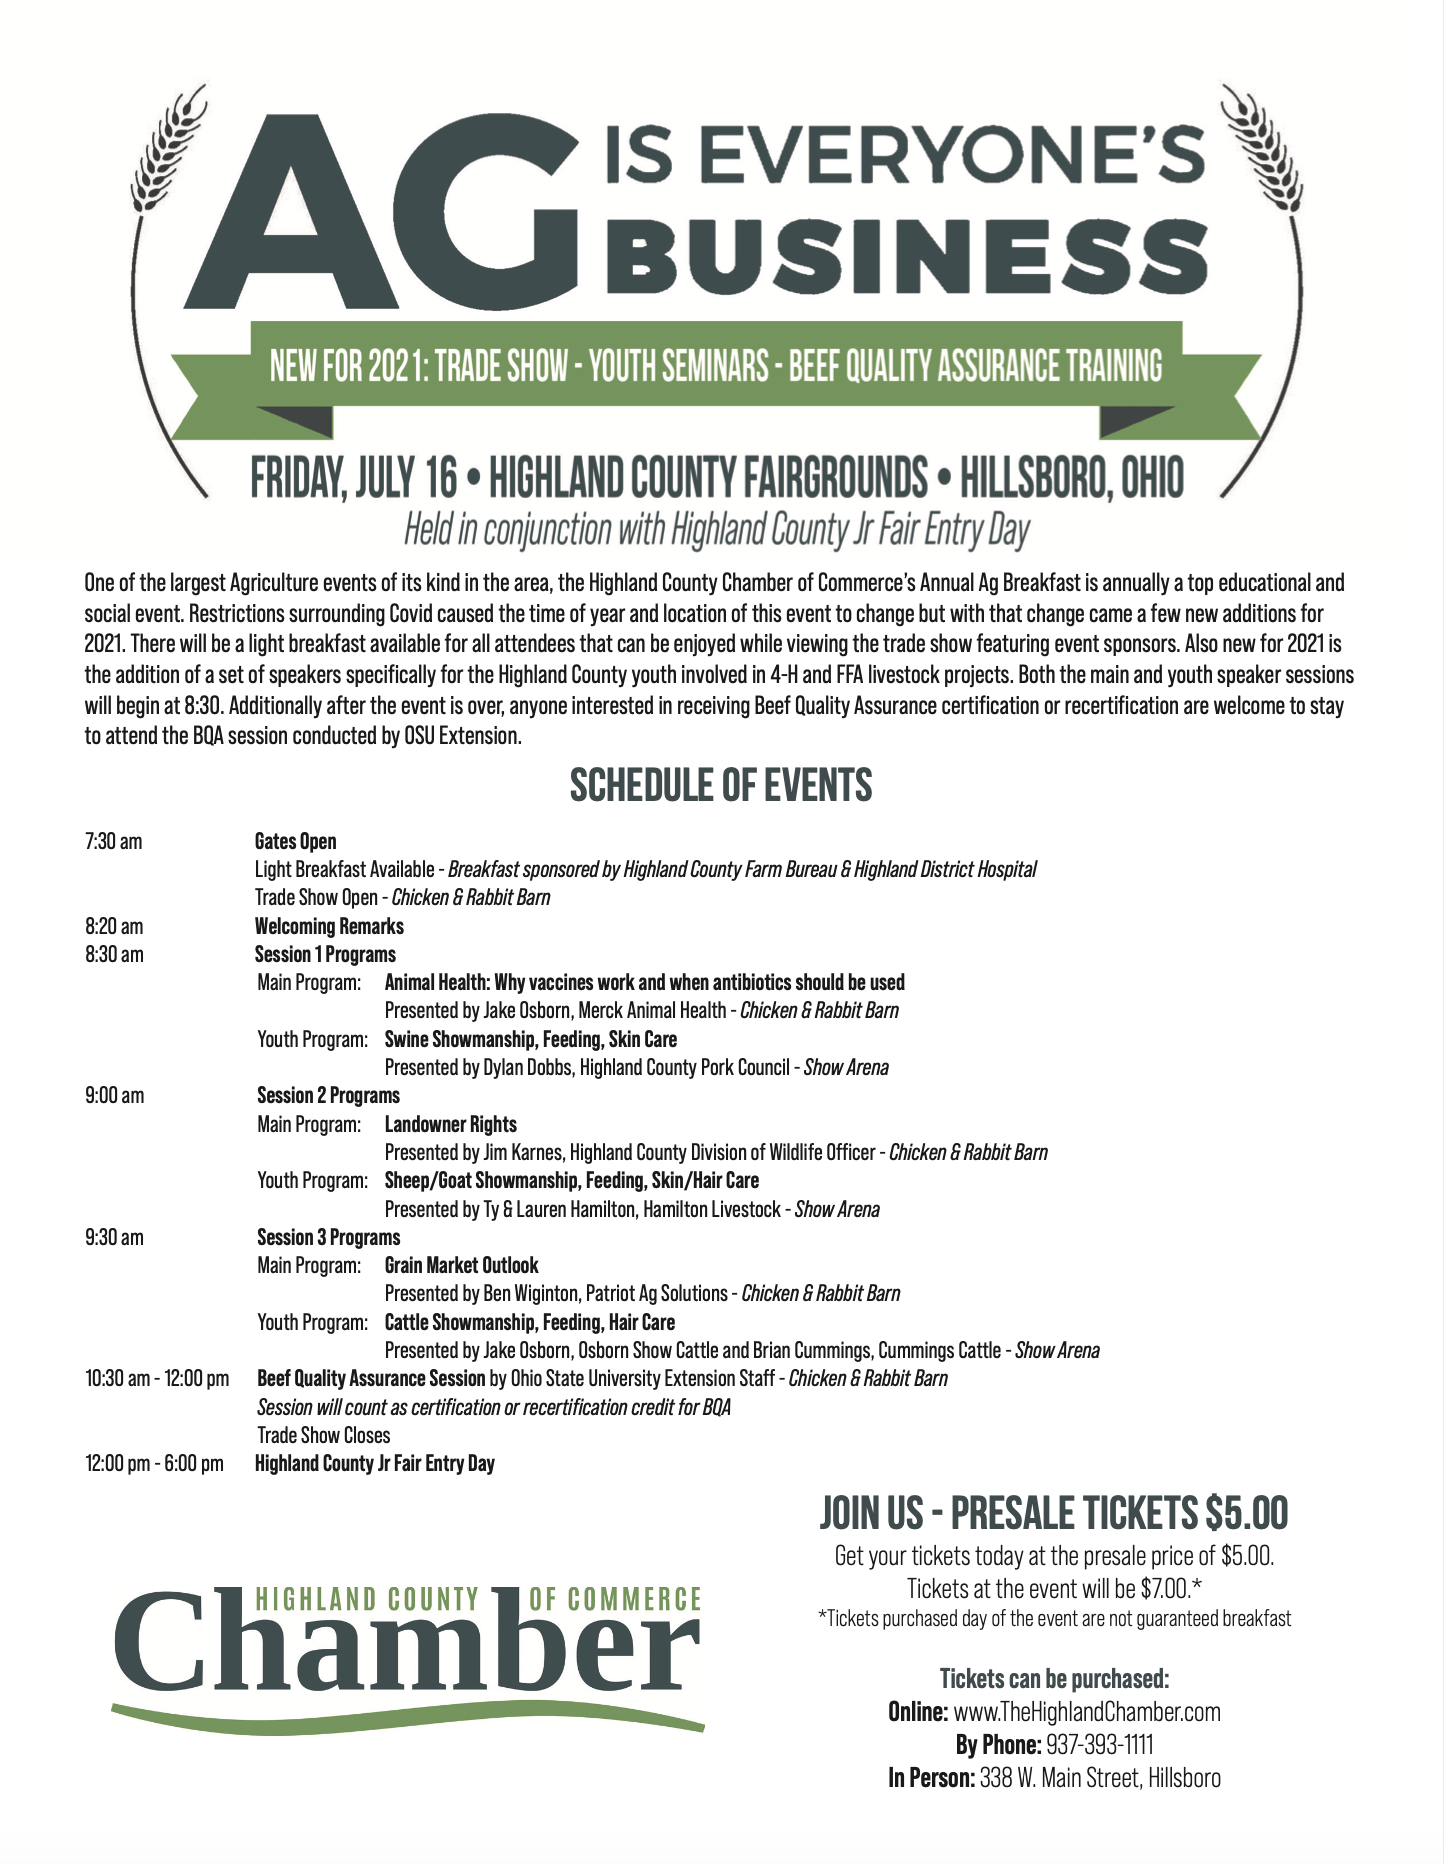 Highland County Chamber of Commerce's Ag is Everyone's Business Flyer